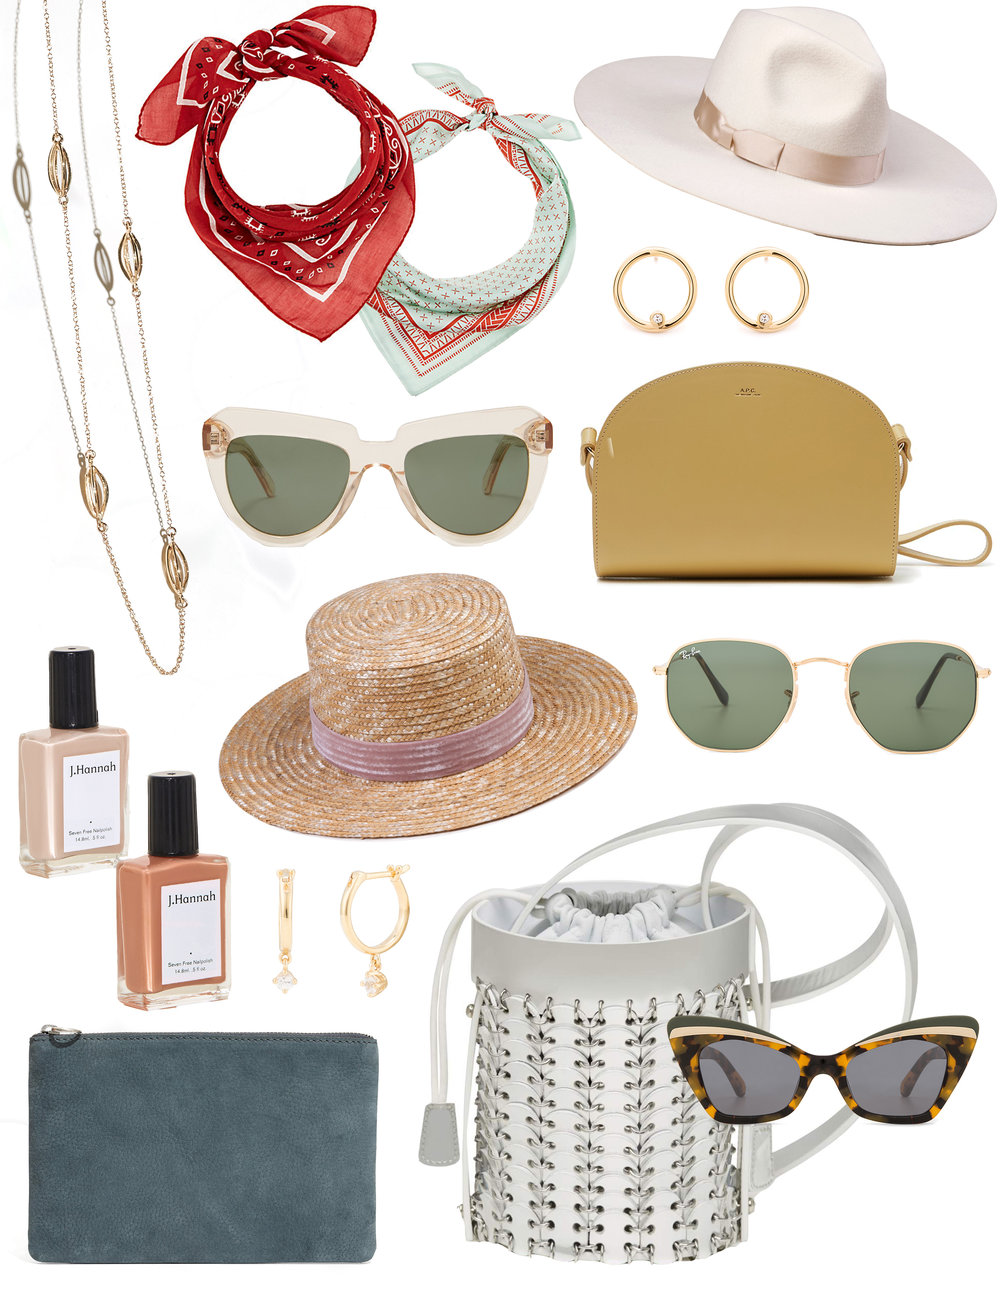 caitlin_miyako_taylor_summer_accessories_edit